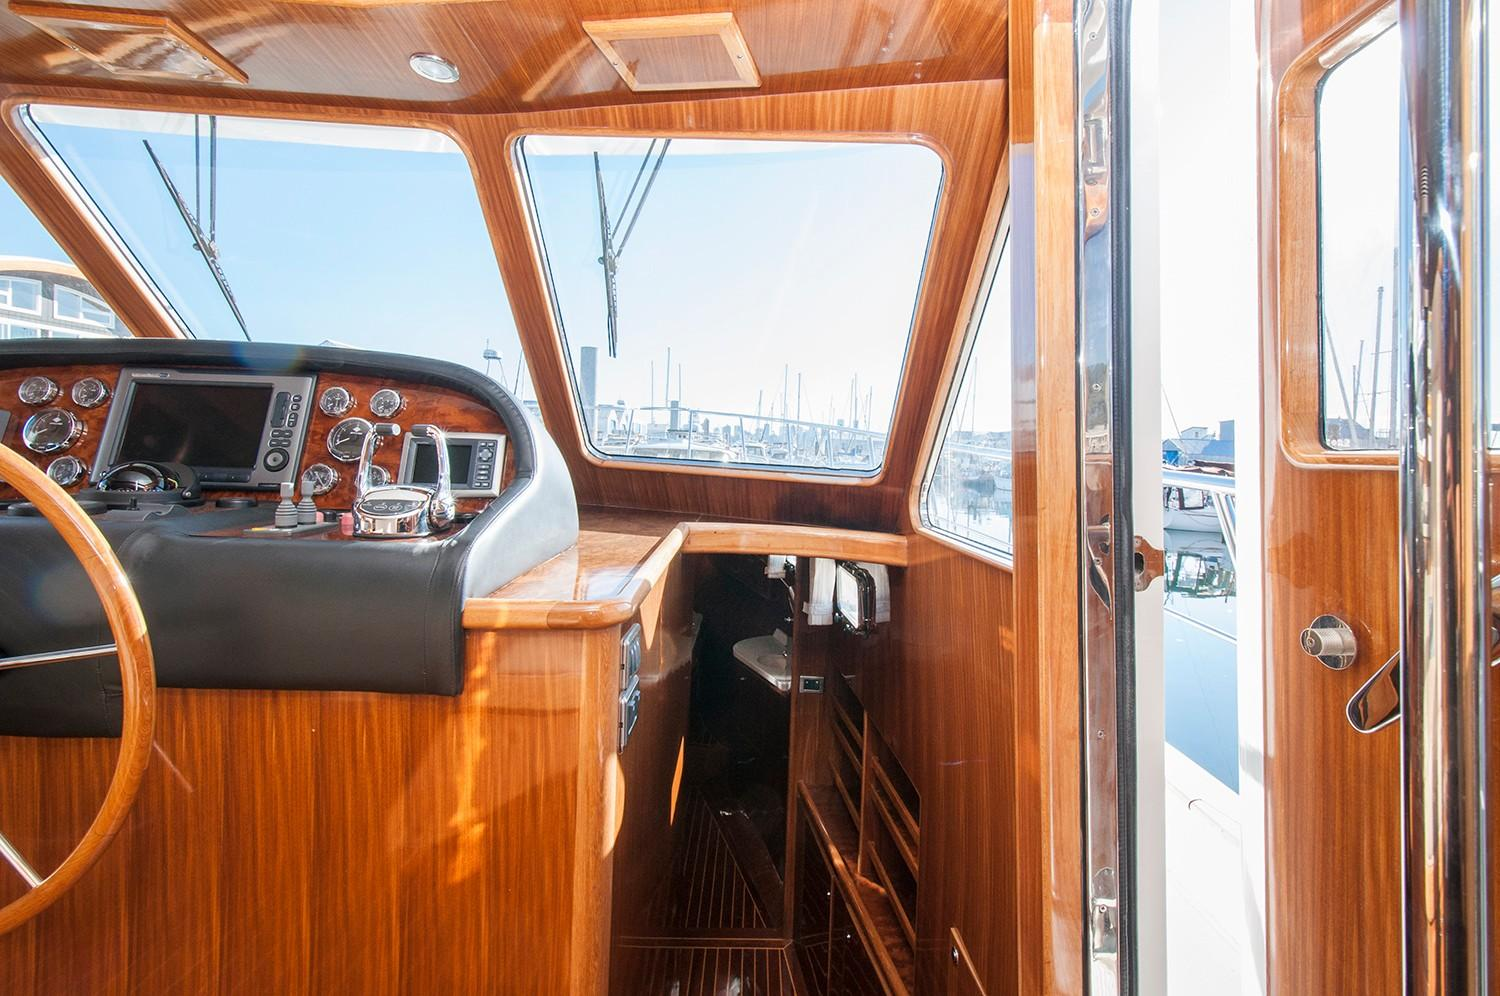 Forward to staterooms